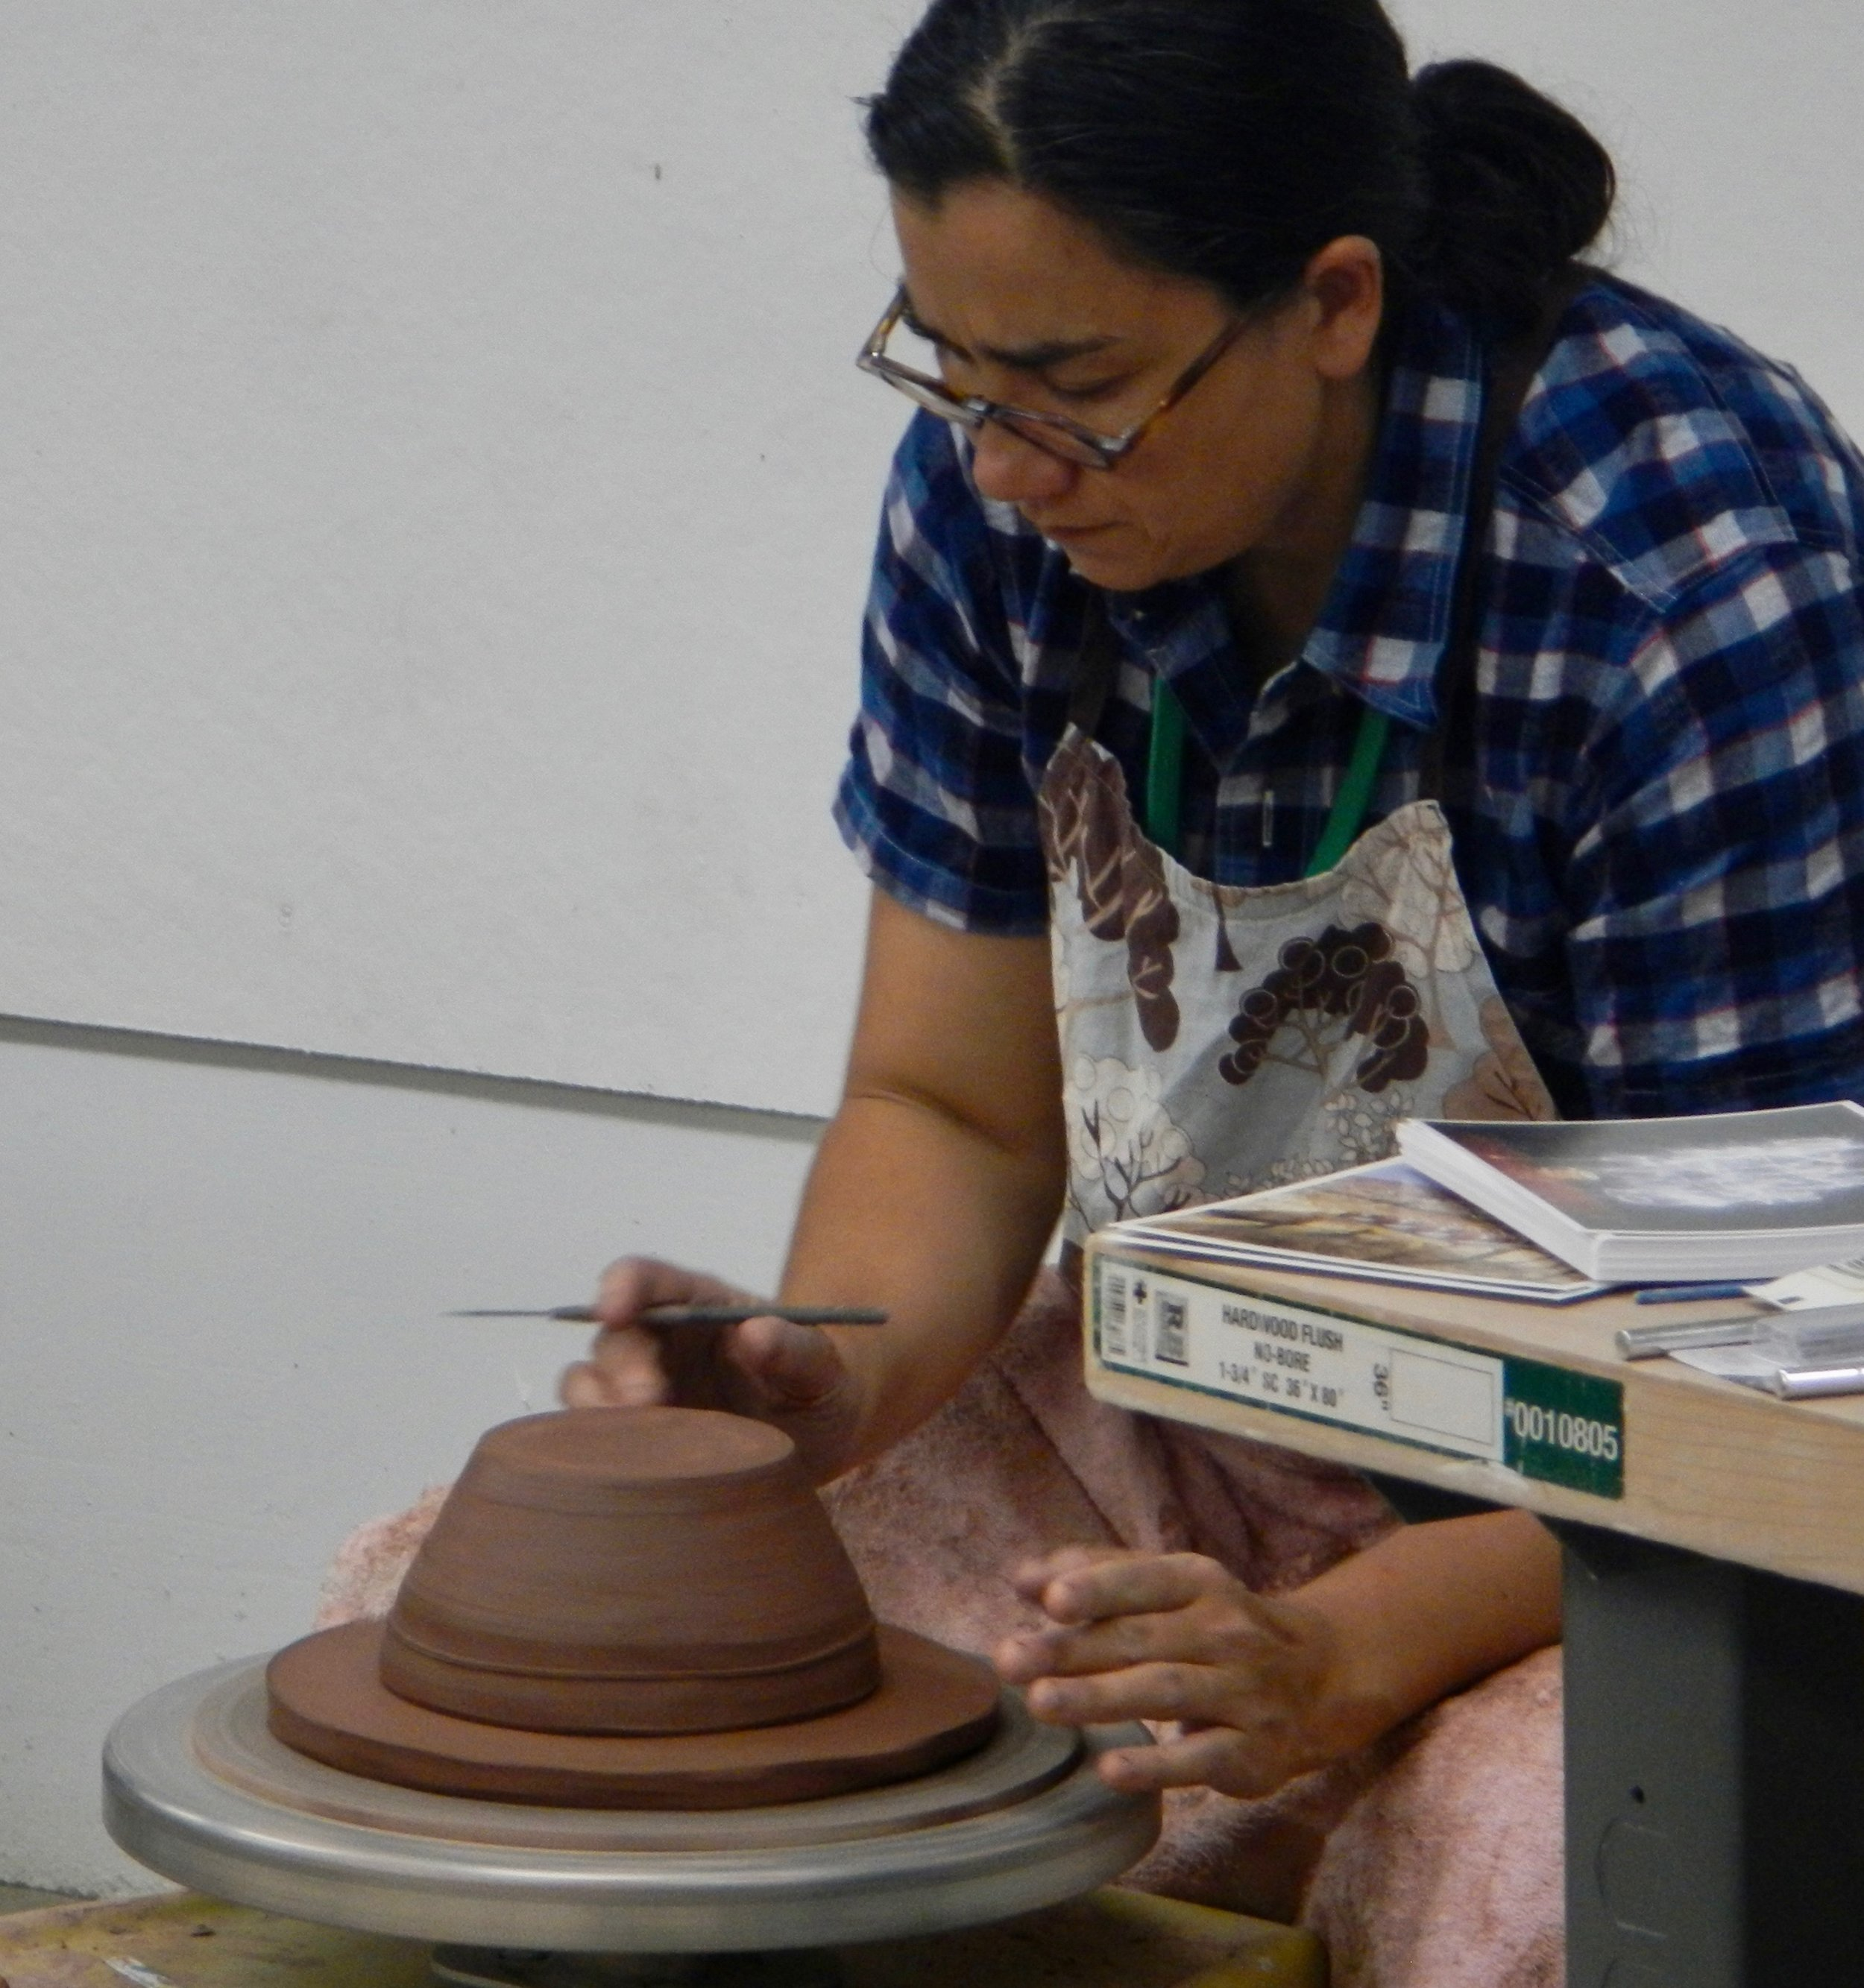 (Turning over the bowl on a freshly thrown pad of clay to trim a foot.)